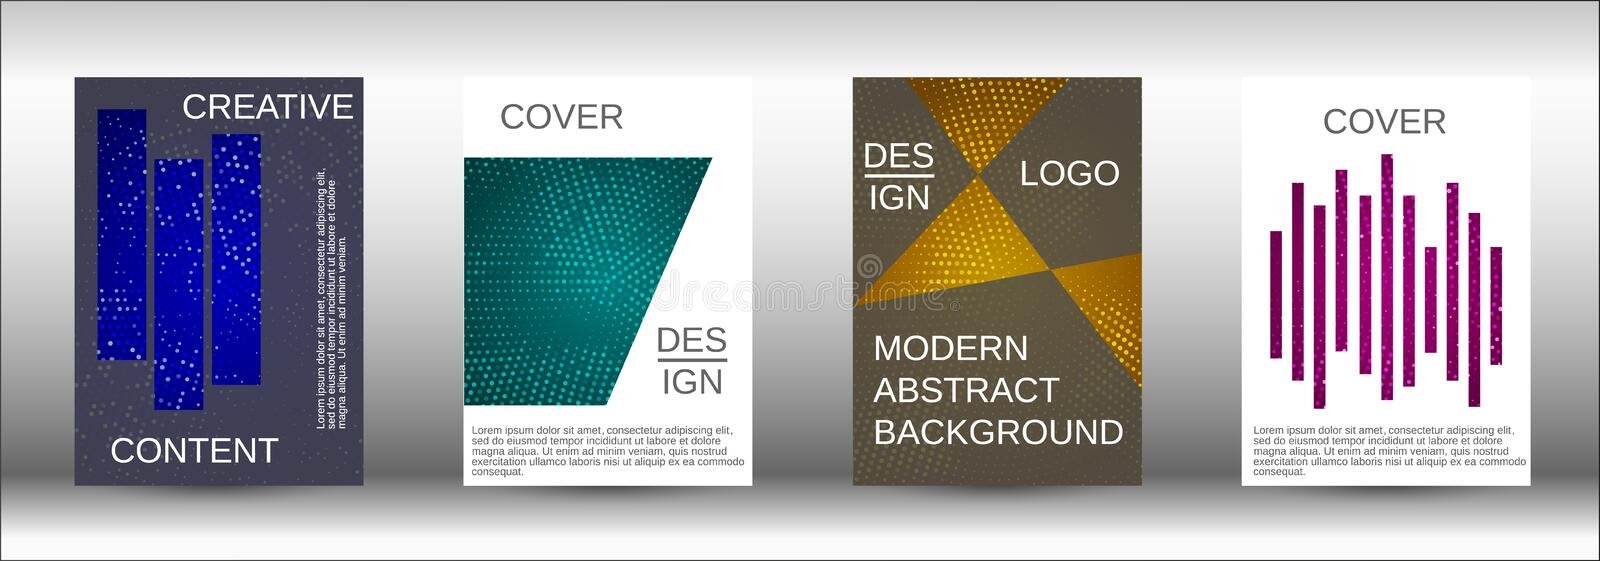 Set of modern abstract covers. vector illustration